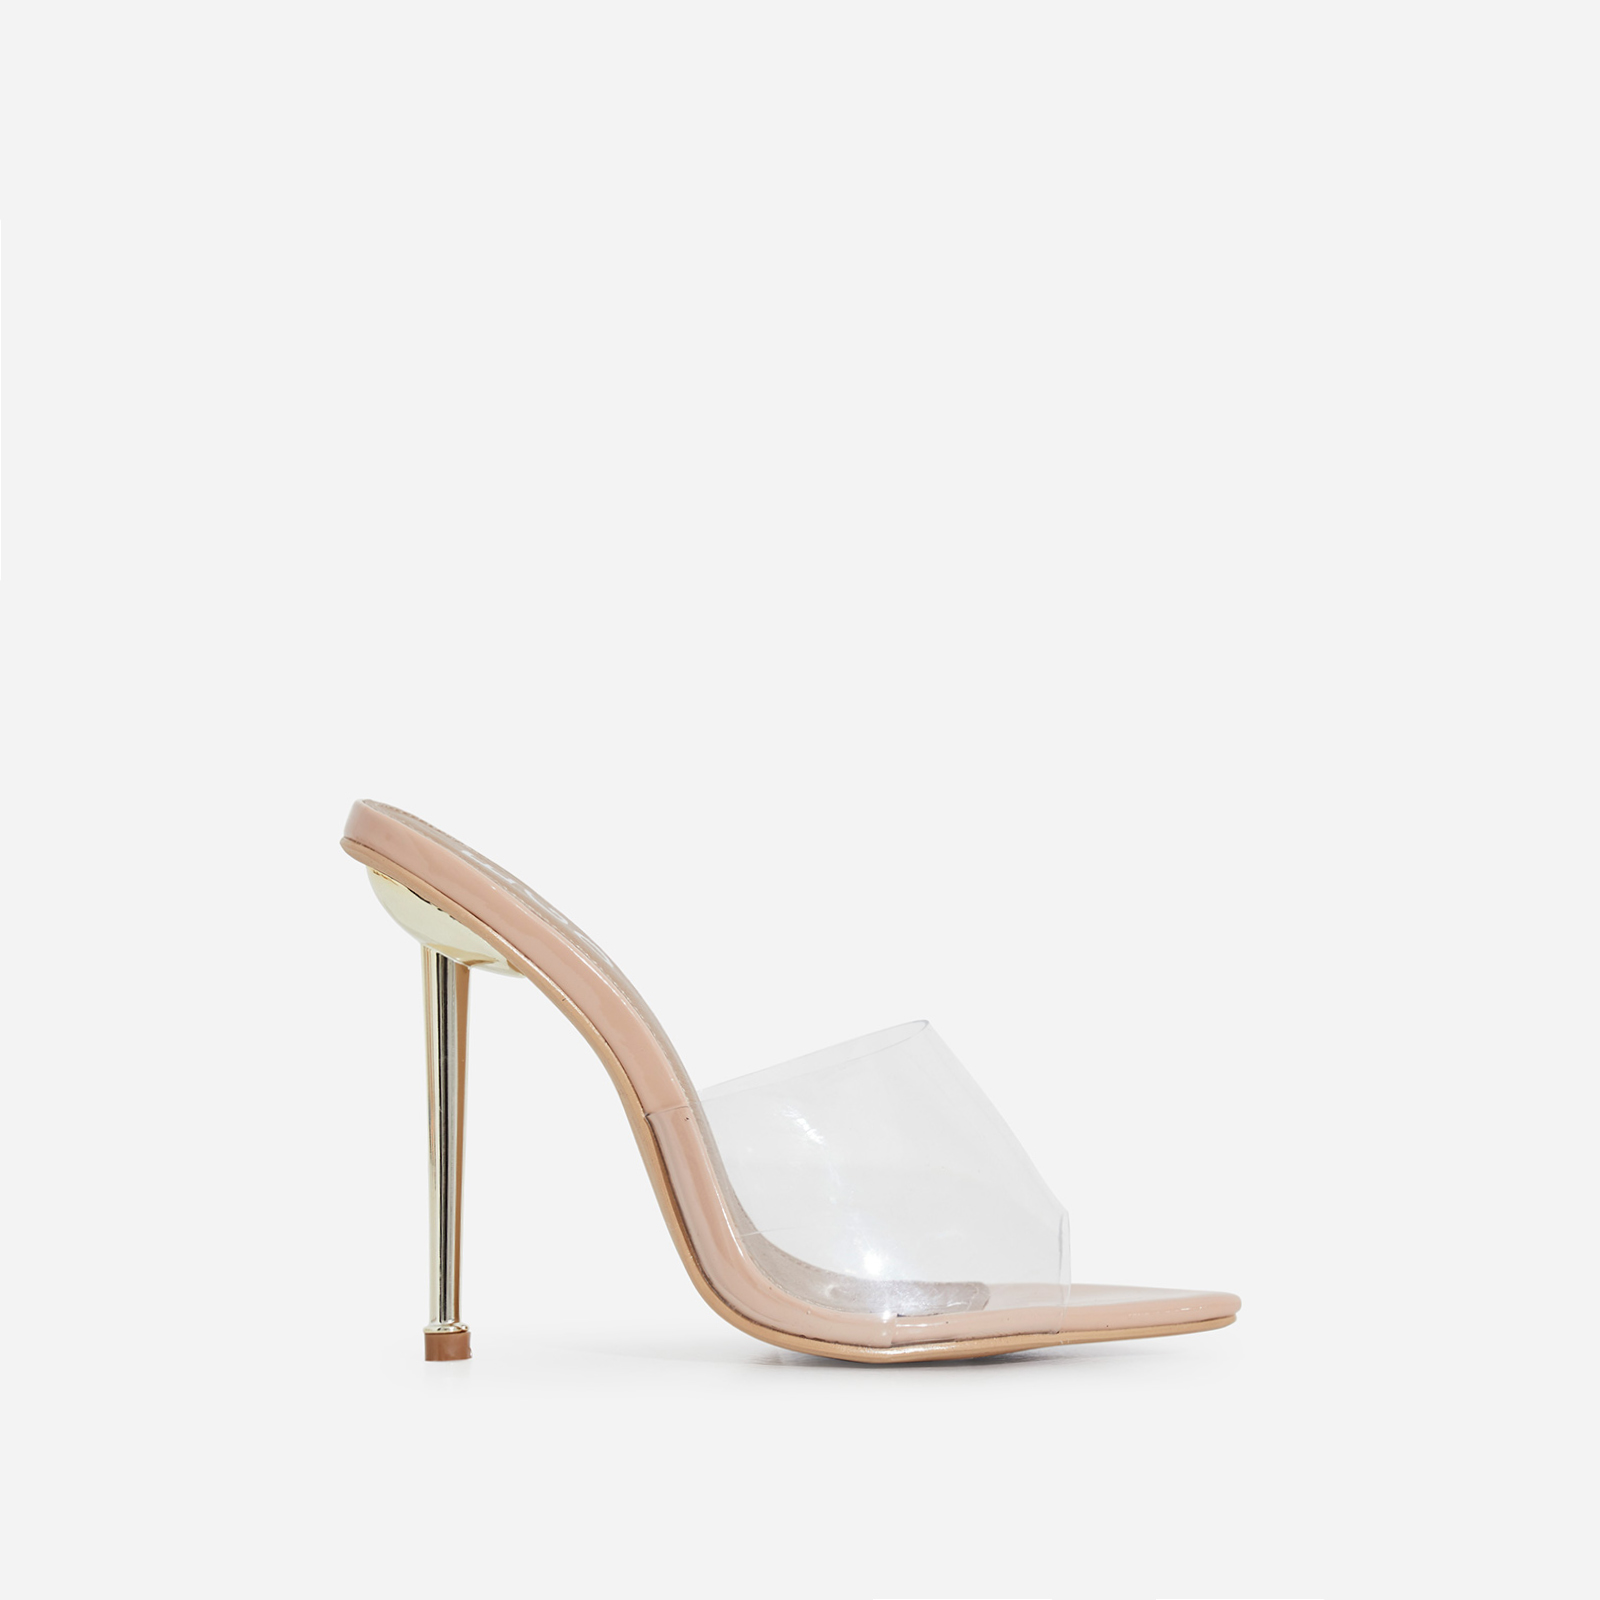 KingKing Perspex Pointed Peep Toe Heel Mule In Nude Patent